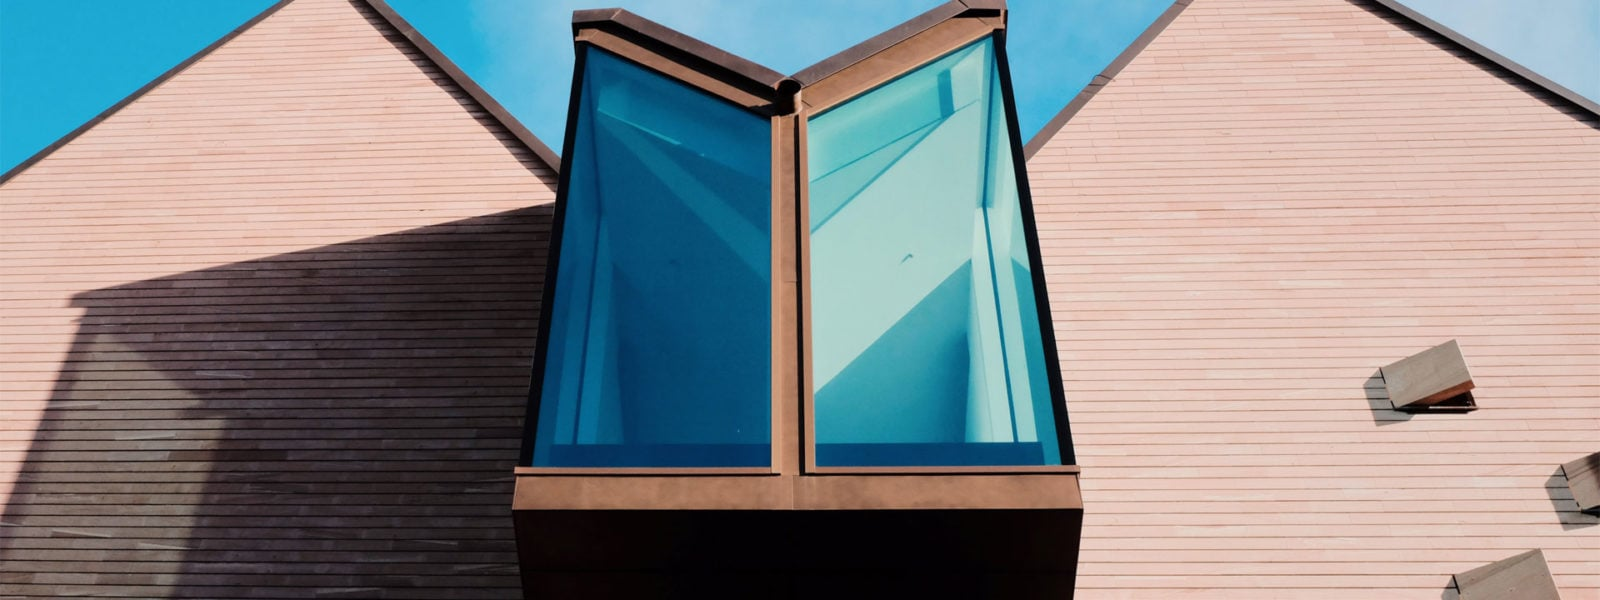 3 Things That Could Potentially Spoil Your Exterior Design Efforts